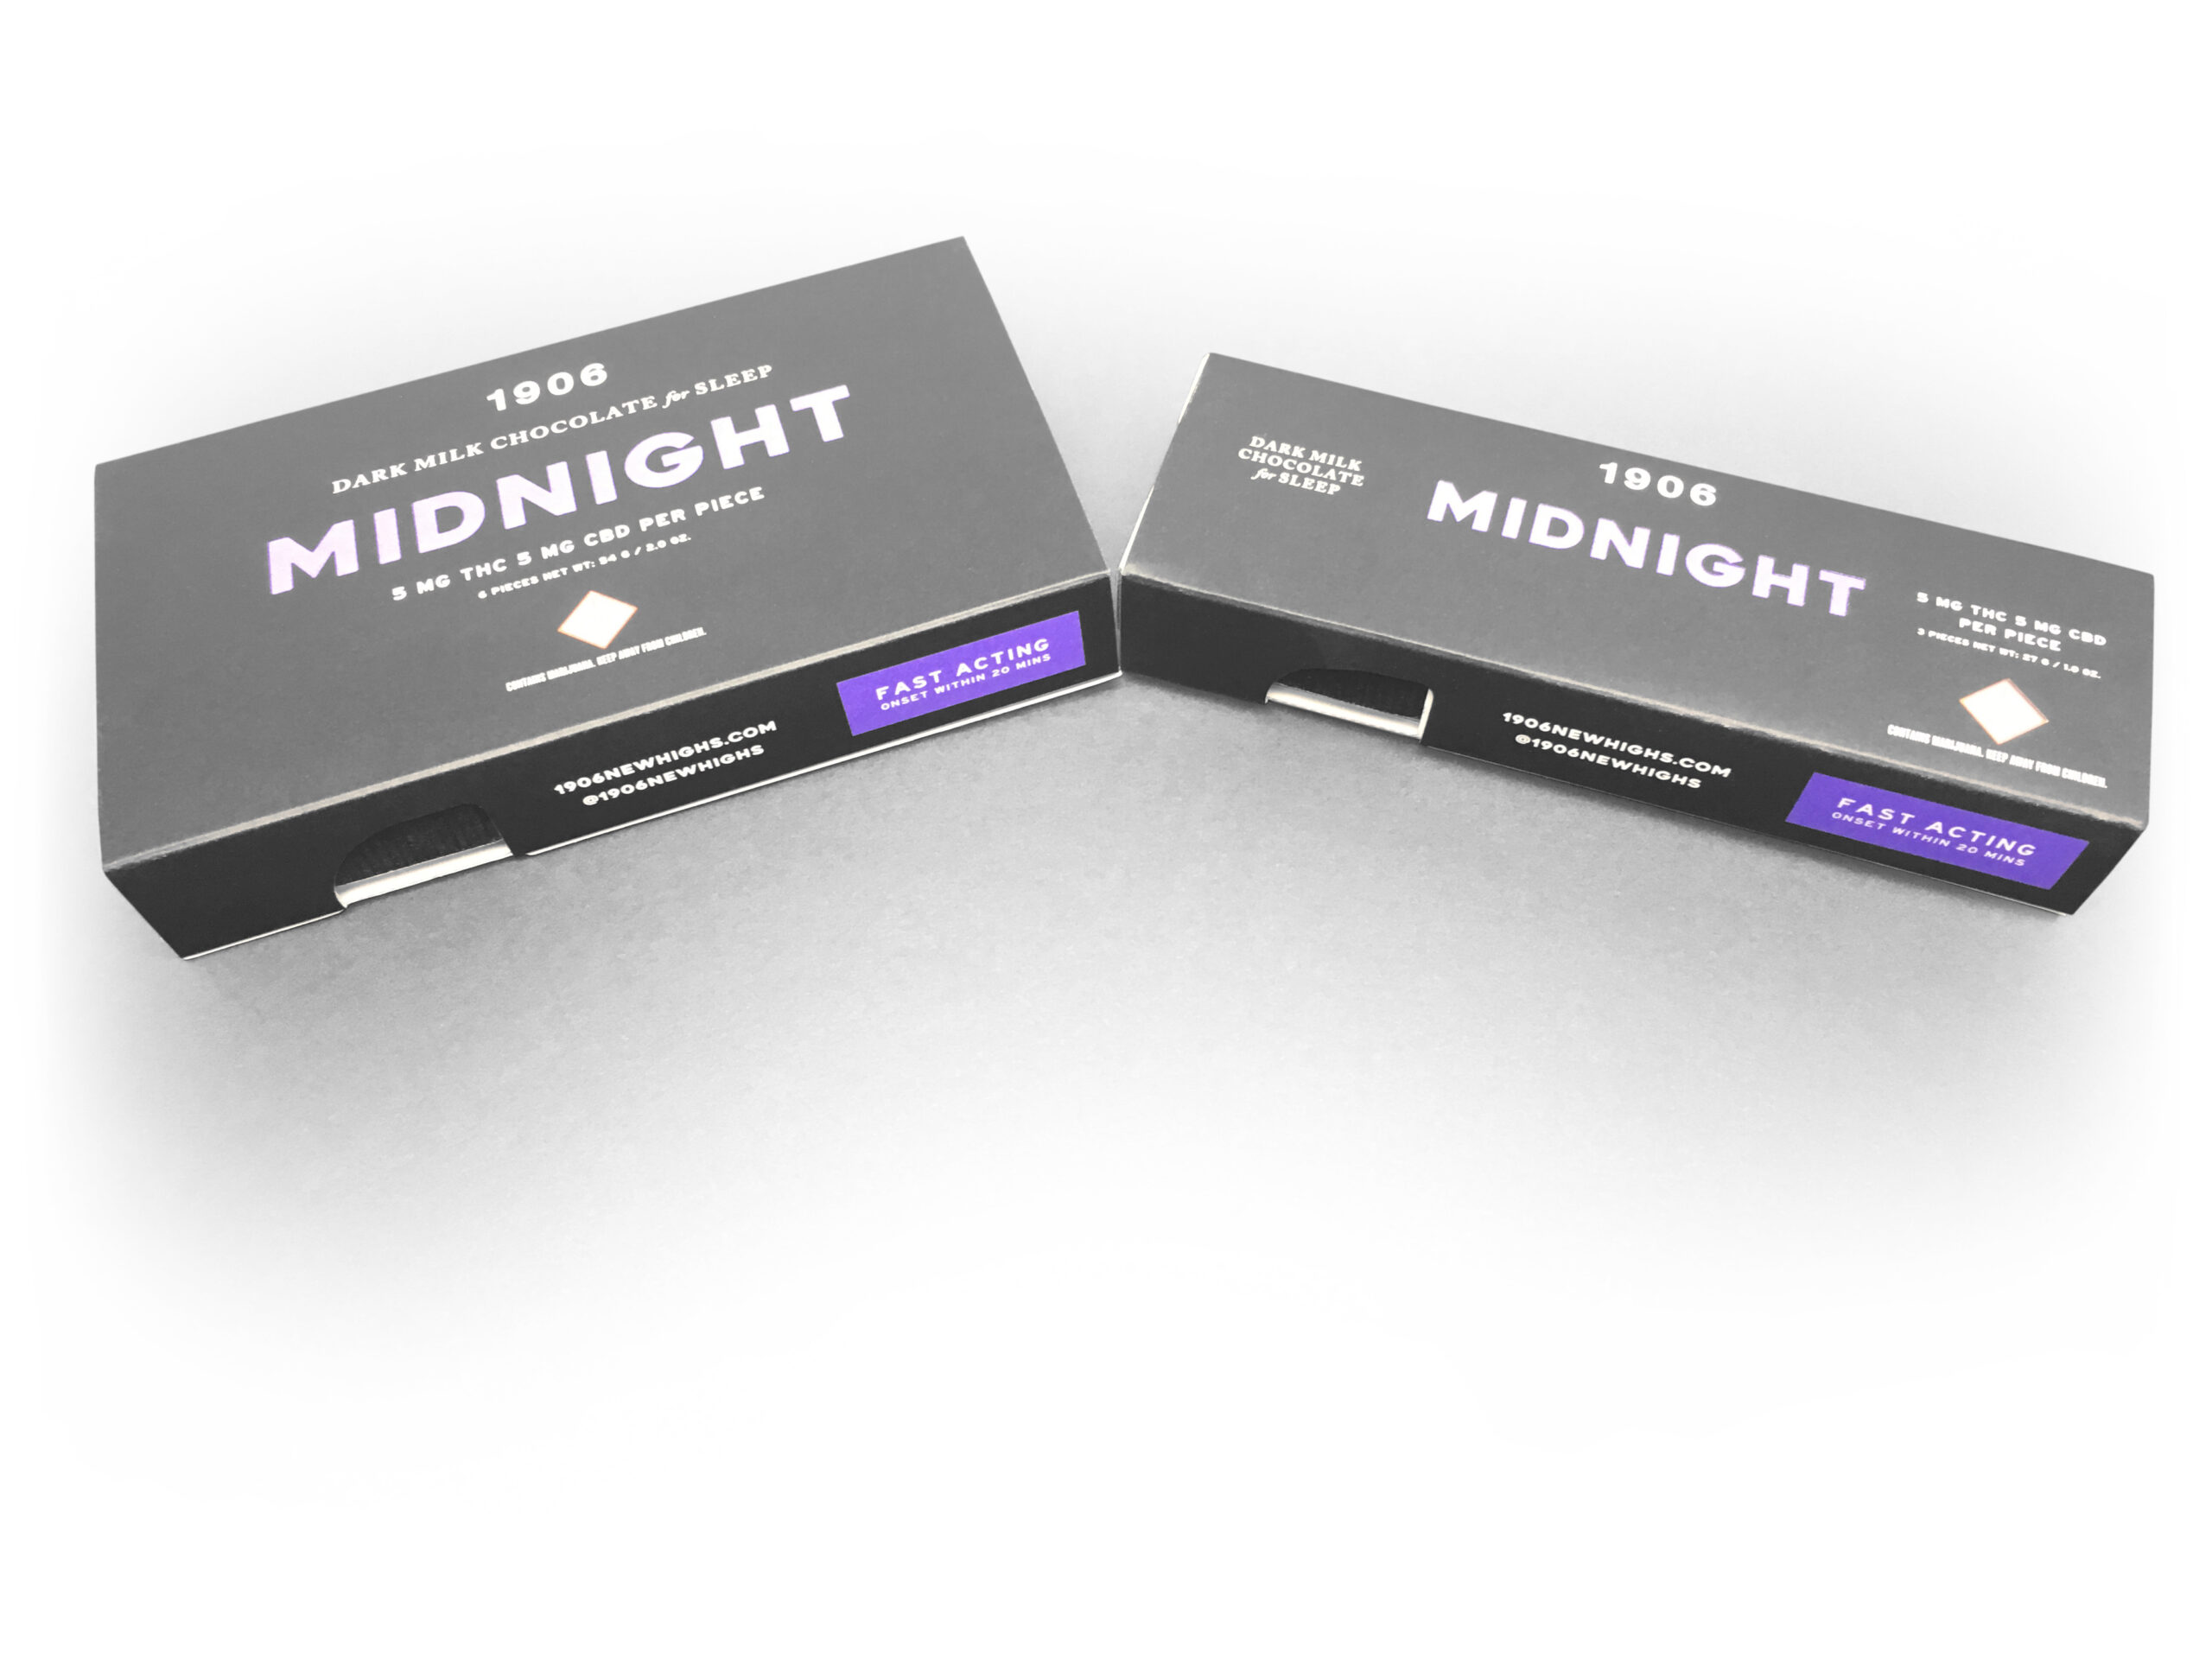 Cannabis Packaging and Printing - 1906 Midnight Chocolate Edibles